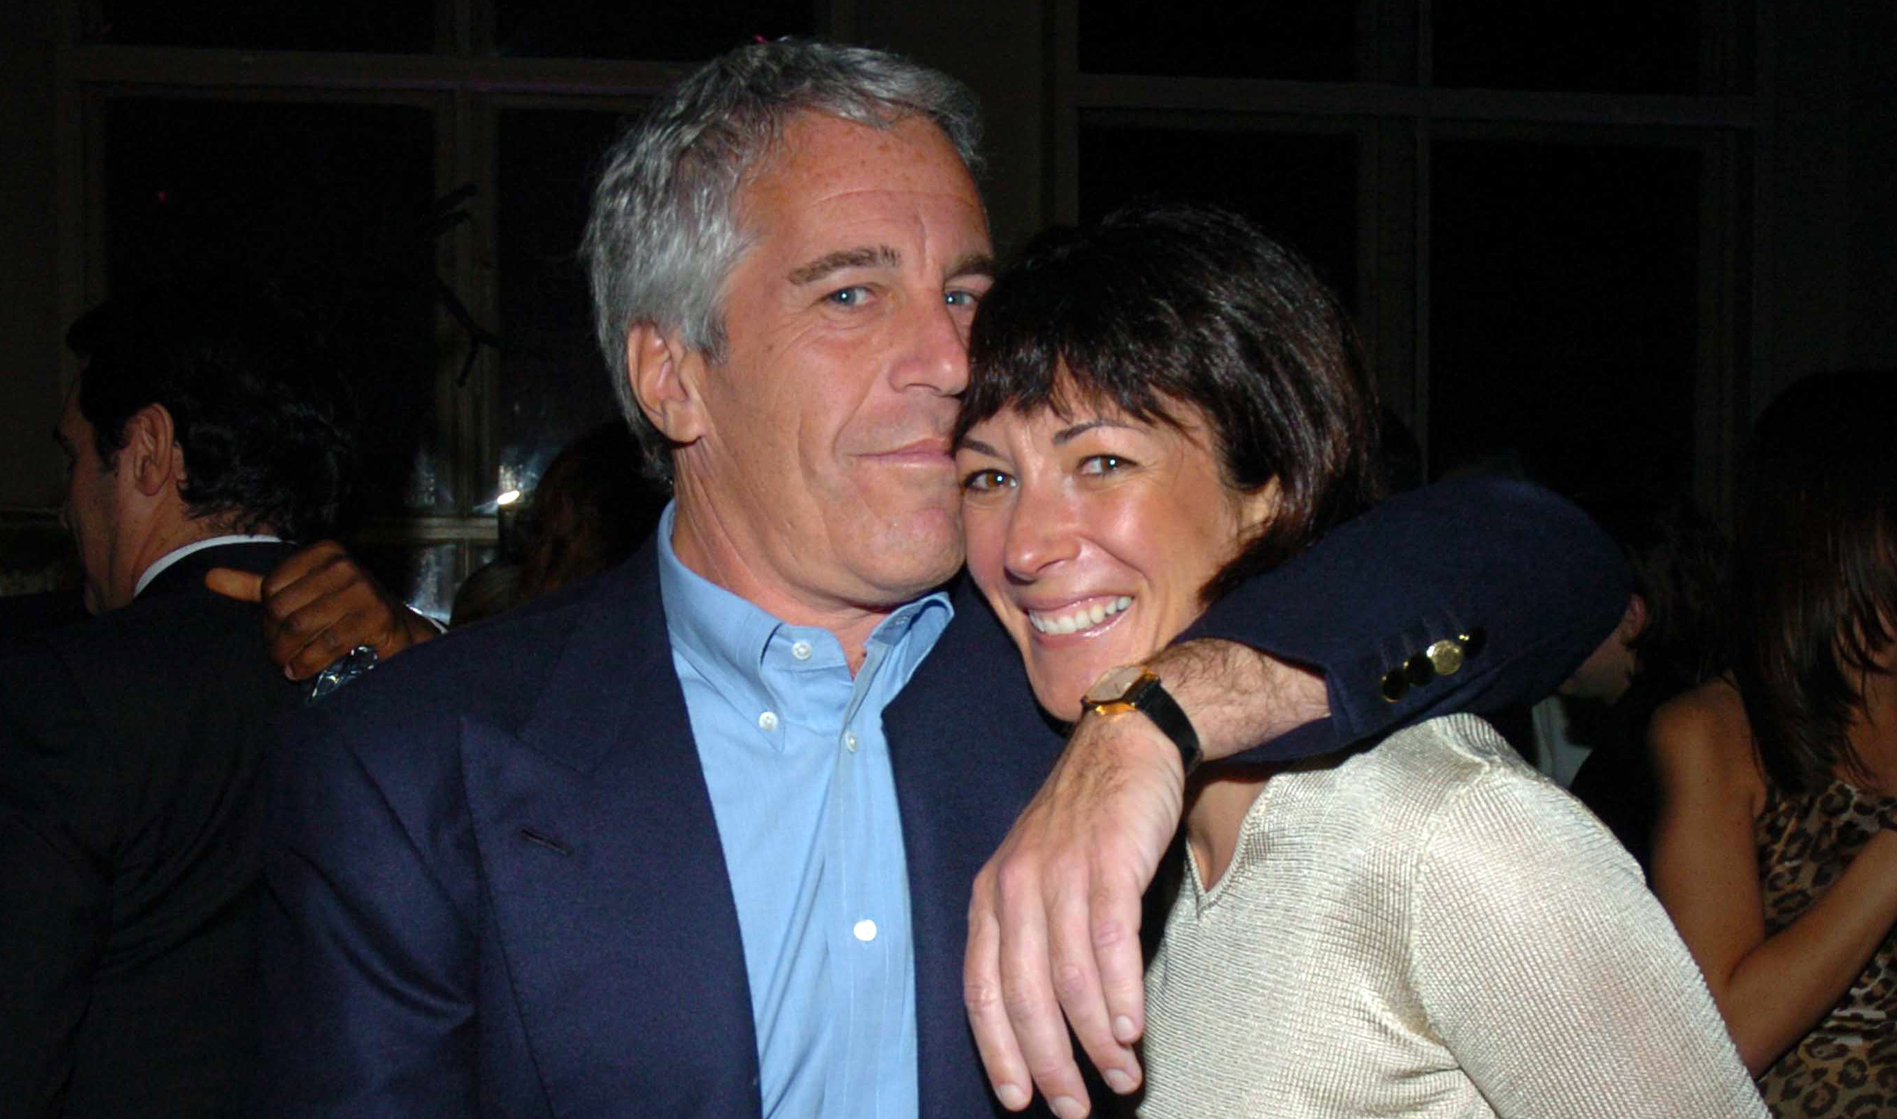 jeffrey epstein ghislaine maxwell cinematown.it